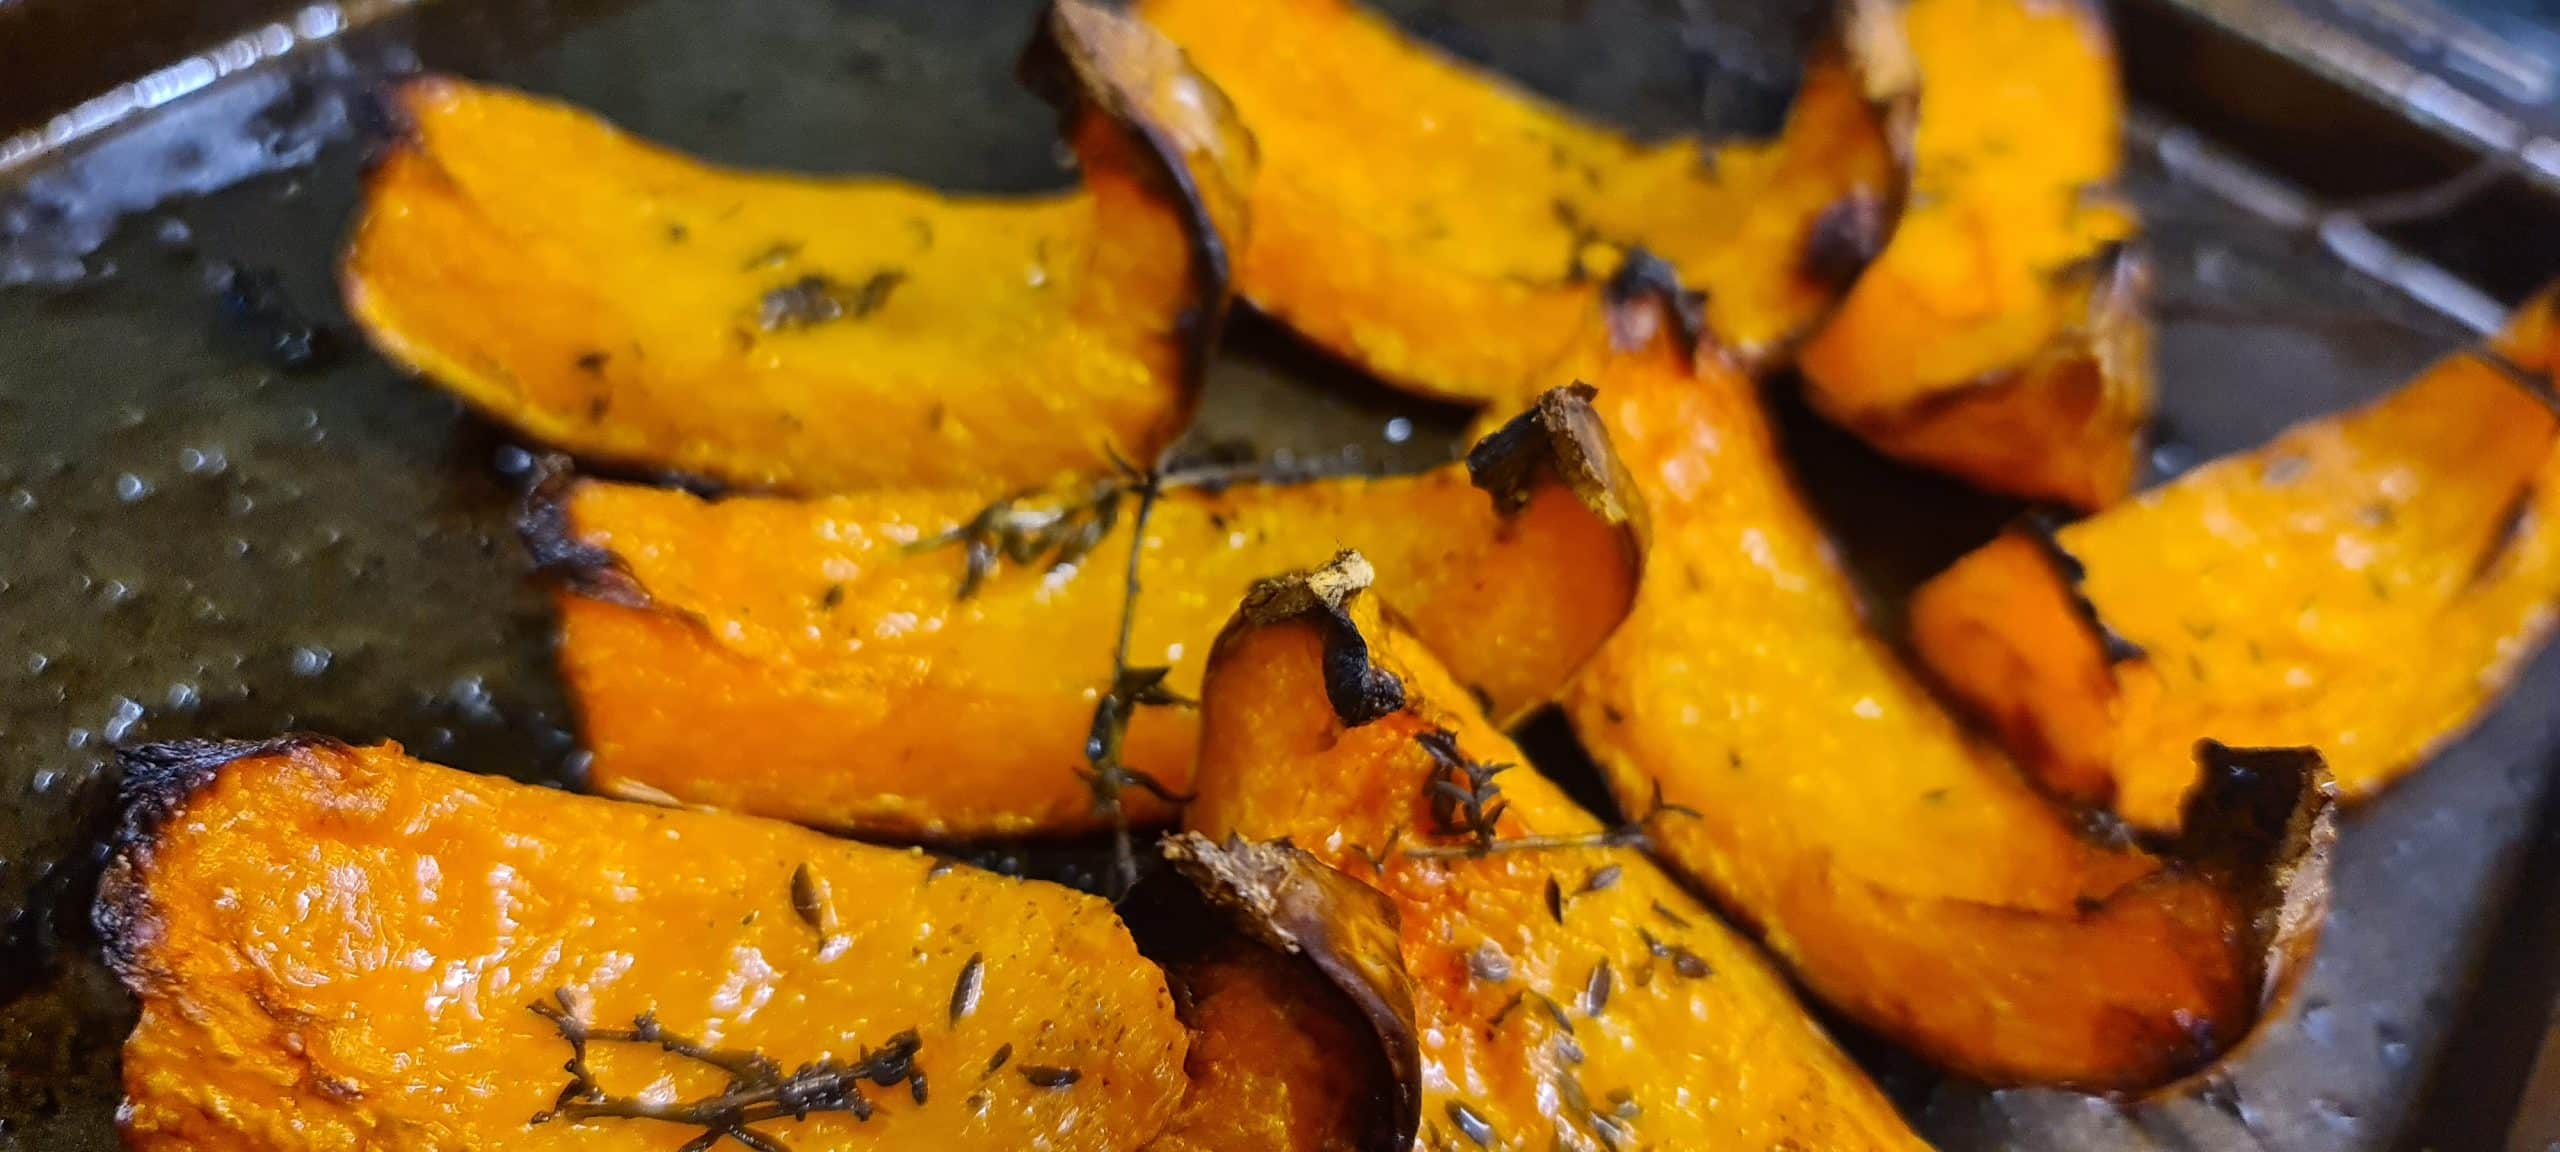 You are currently viewing Roasted Butternut Squash